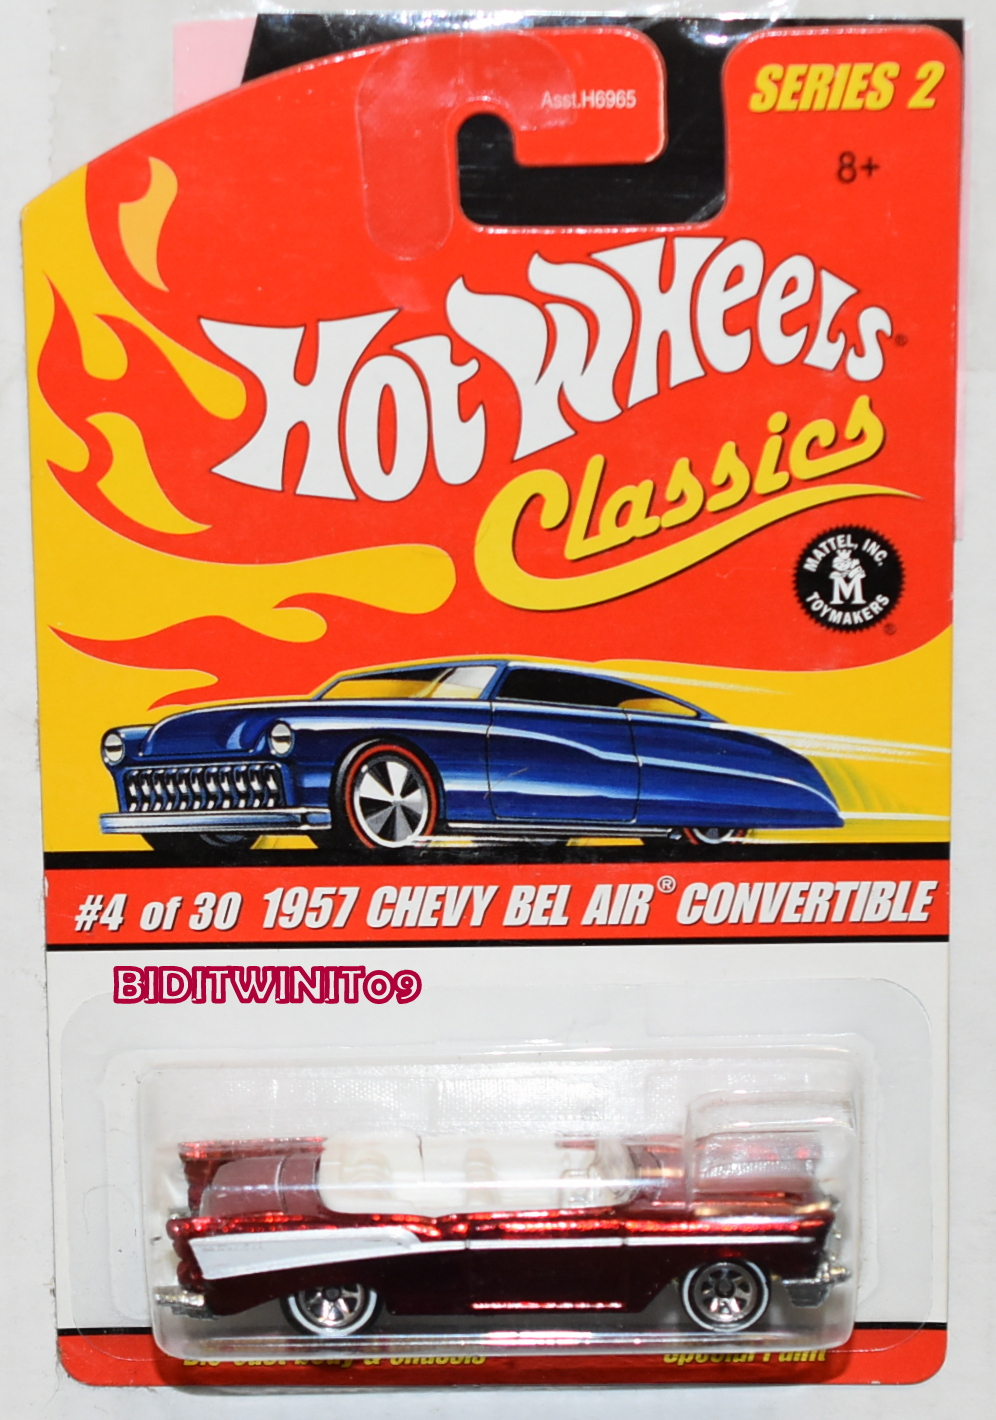 HOT WHEELS CLASSICS SERIES 2 1957 CHEVY BEL AIR CONVERTIBLE #4/30 BRONZE E+